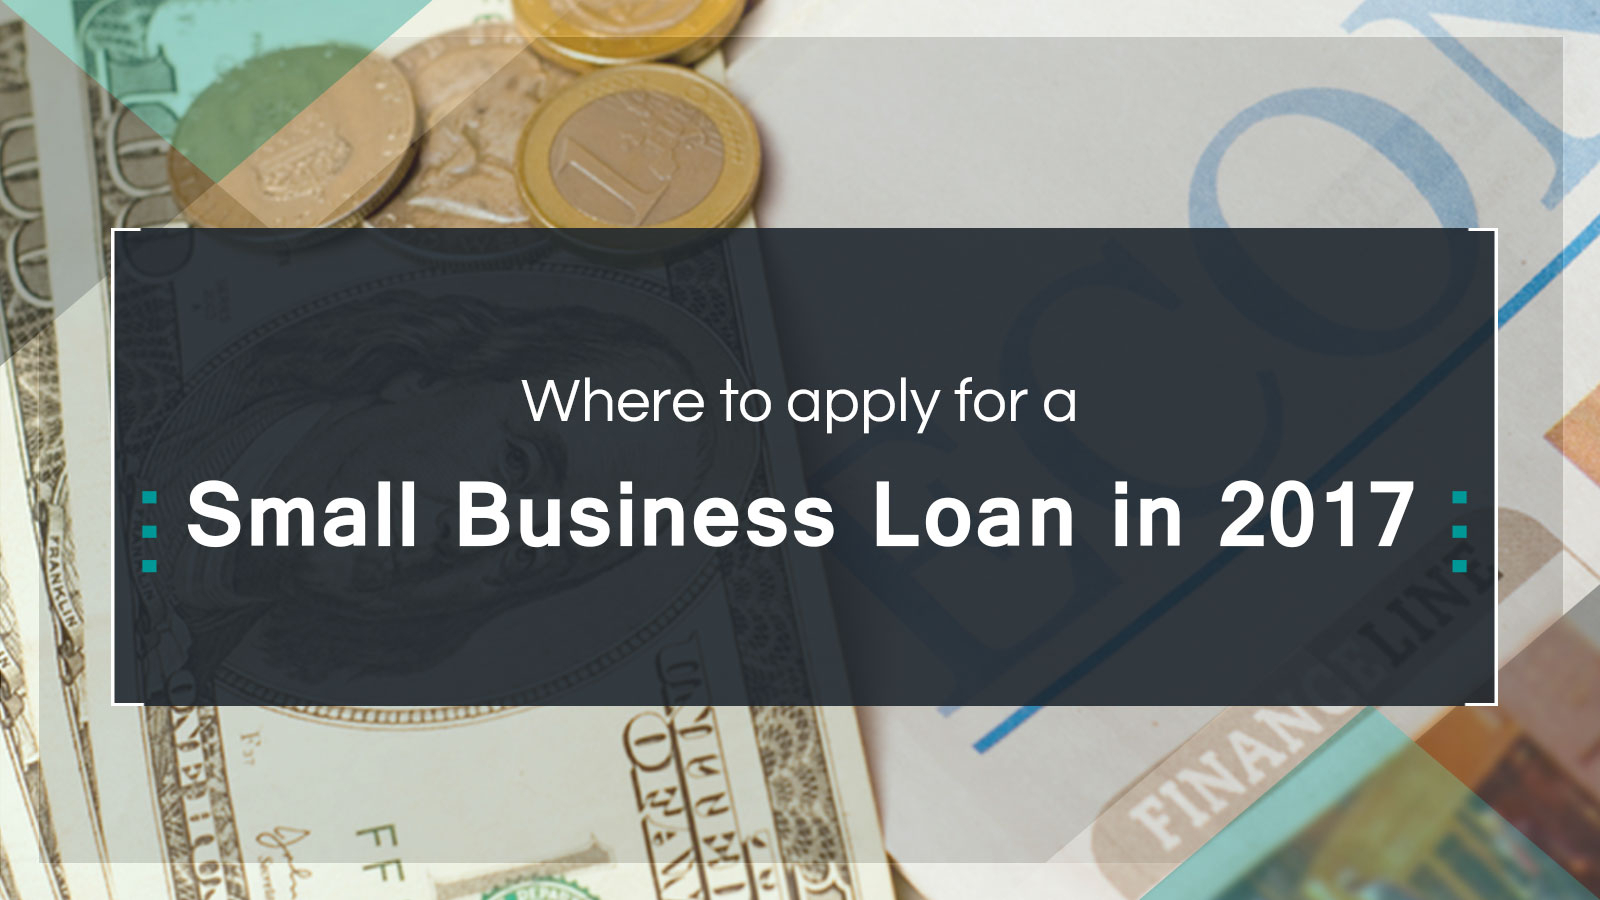 Where To Apply For A Small Business Loan In 2017 To Apply For Small Business